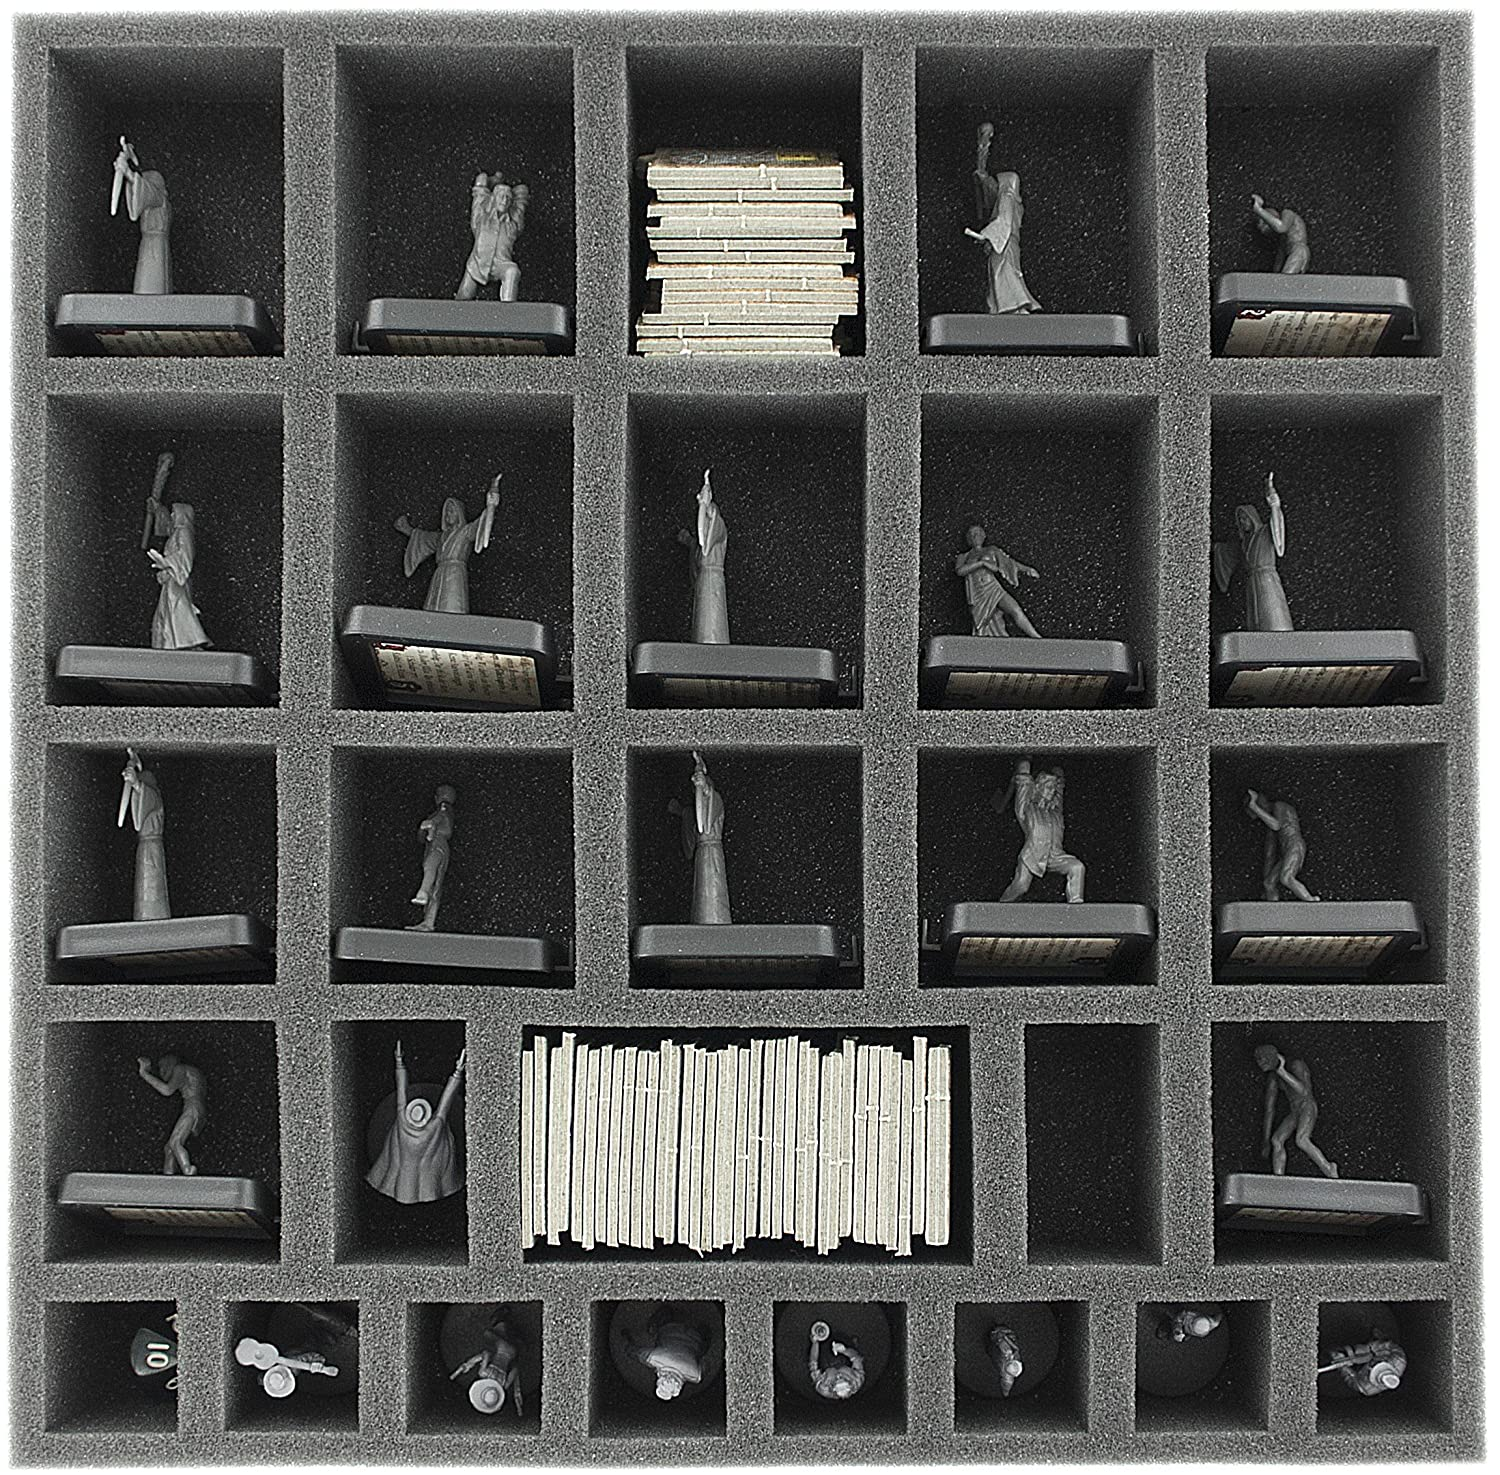 Foam tray value set for Mansions of Madness: Amazon.es: Juguetes y juegos